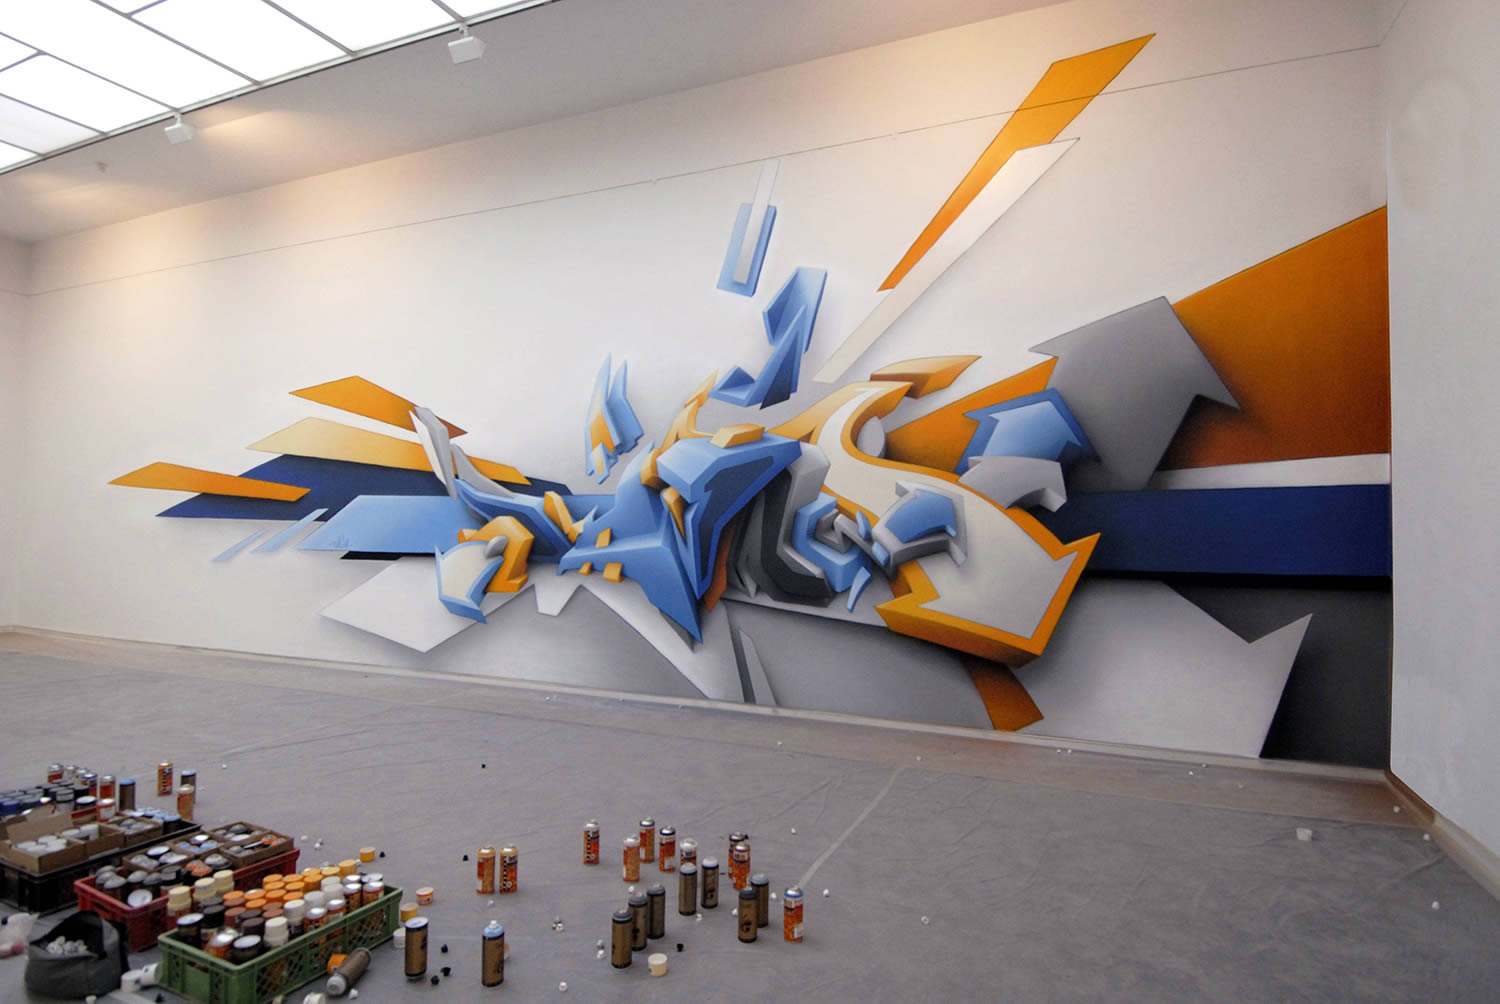 3d indoor mural by daim